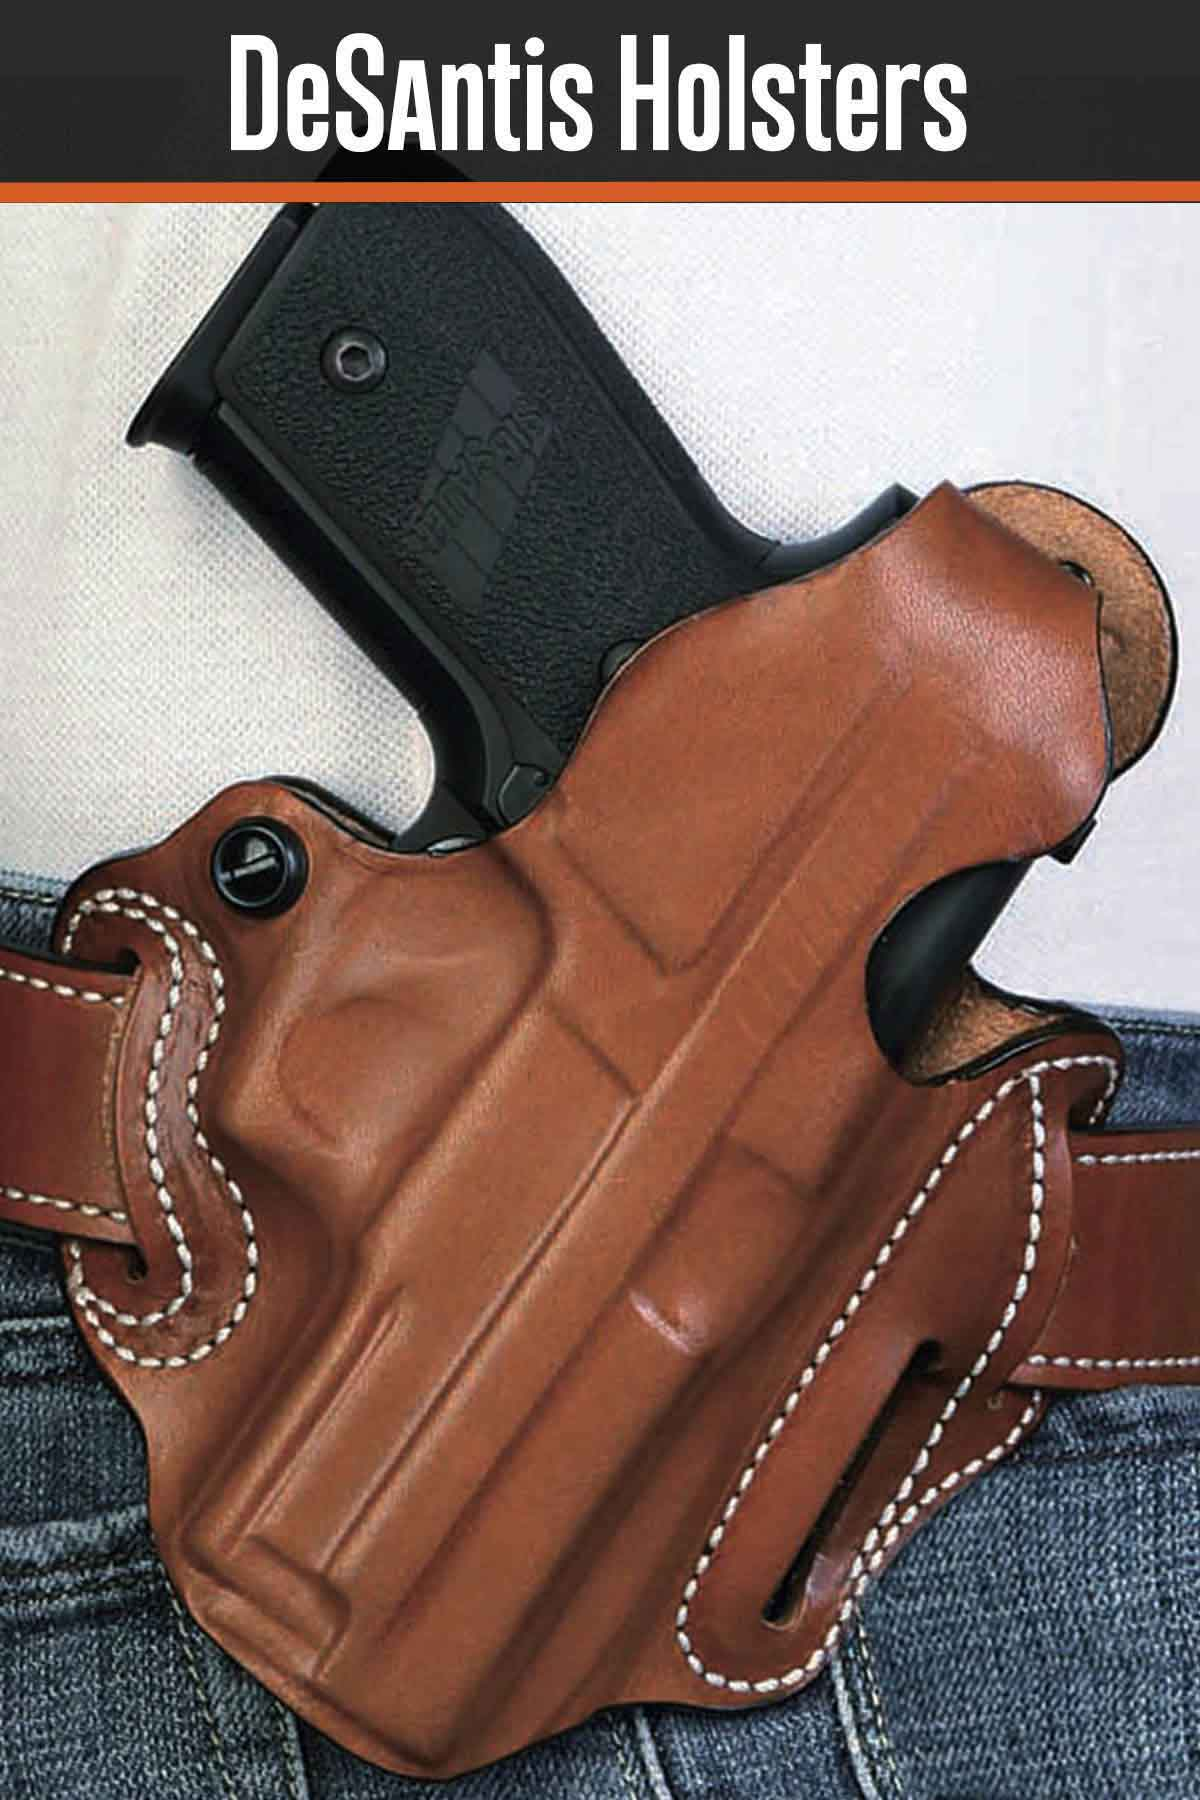 desantis tactical holsters IWB OWB concealed carry